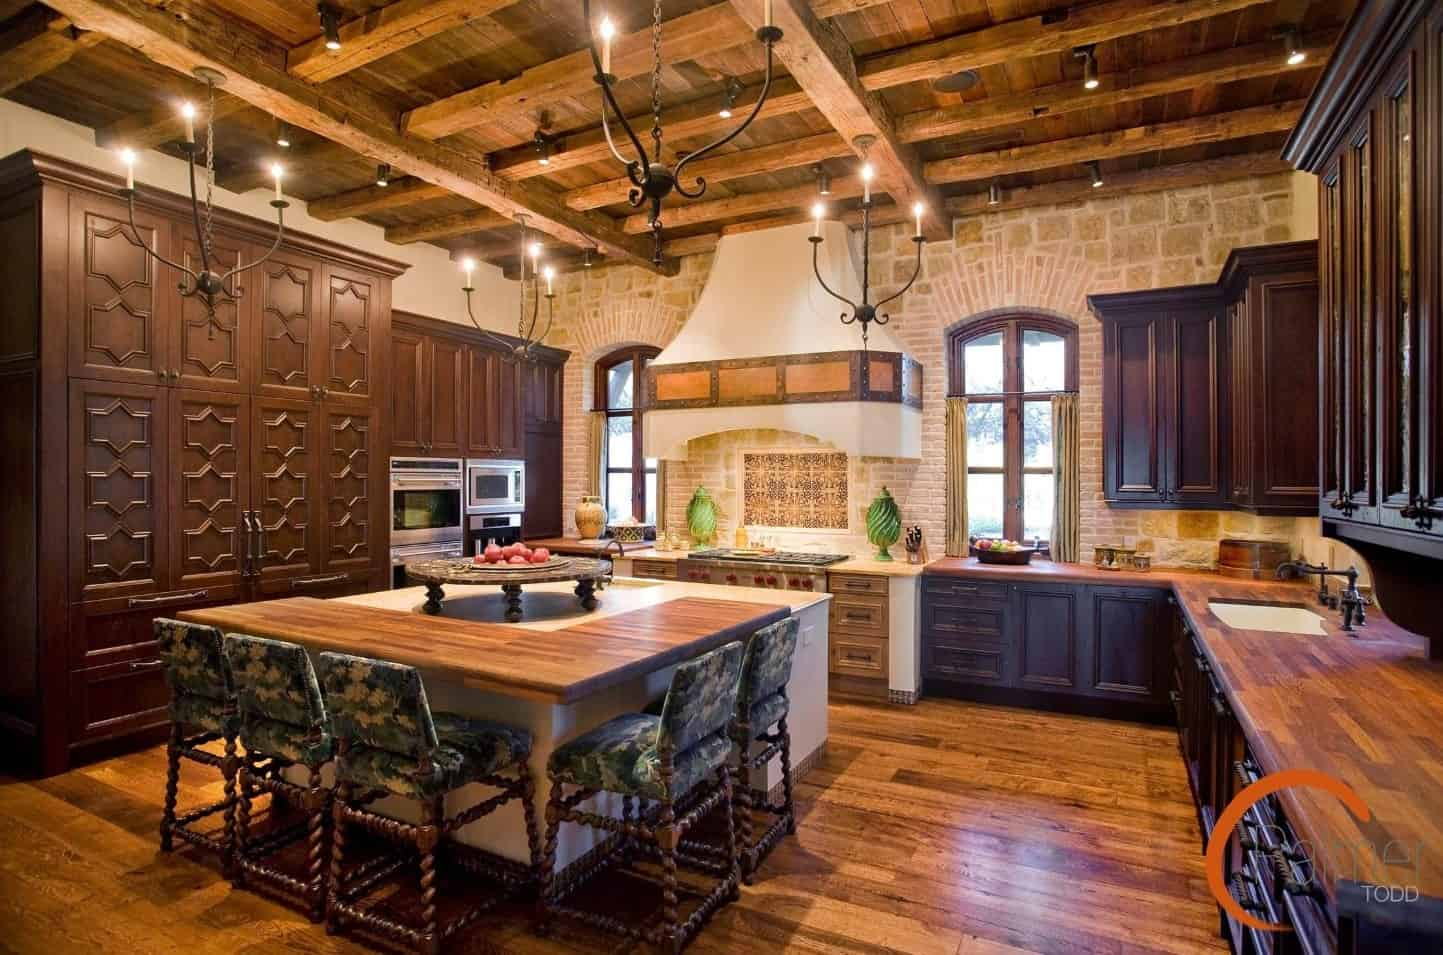 The wooden ceiling has exposed wooden beams crisscrossing each other and also supports the simple wrought iron chandeliers that cast warm yellow lights complementing the dark wooden cabinets and drawers of the L-shaped peninsula.